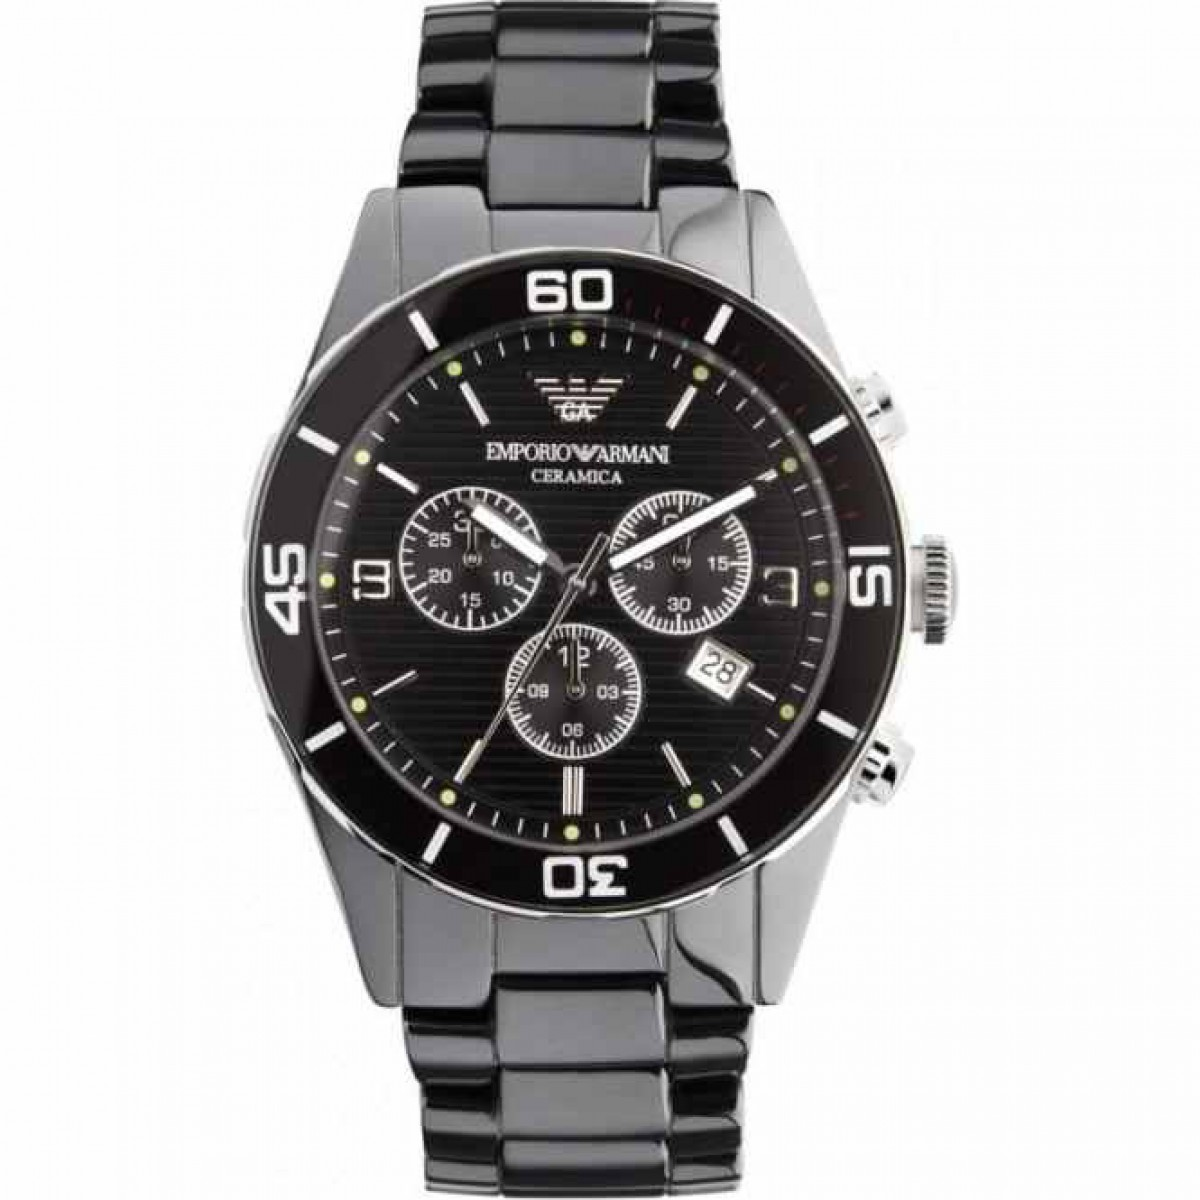 Mens Emporio Armani Ceramic Chronograph Watch AR1421